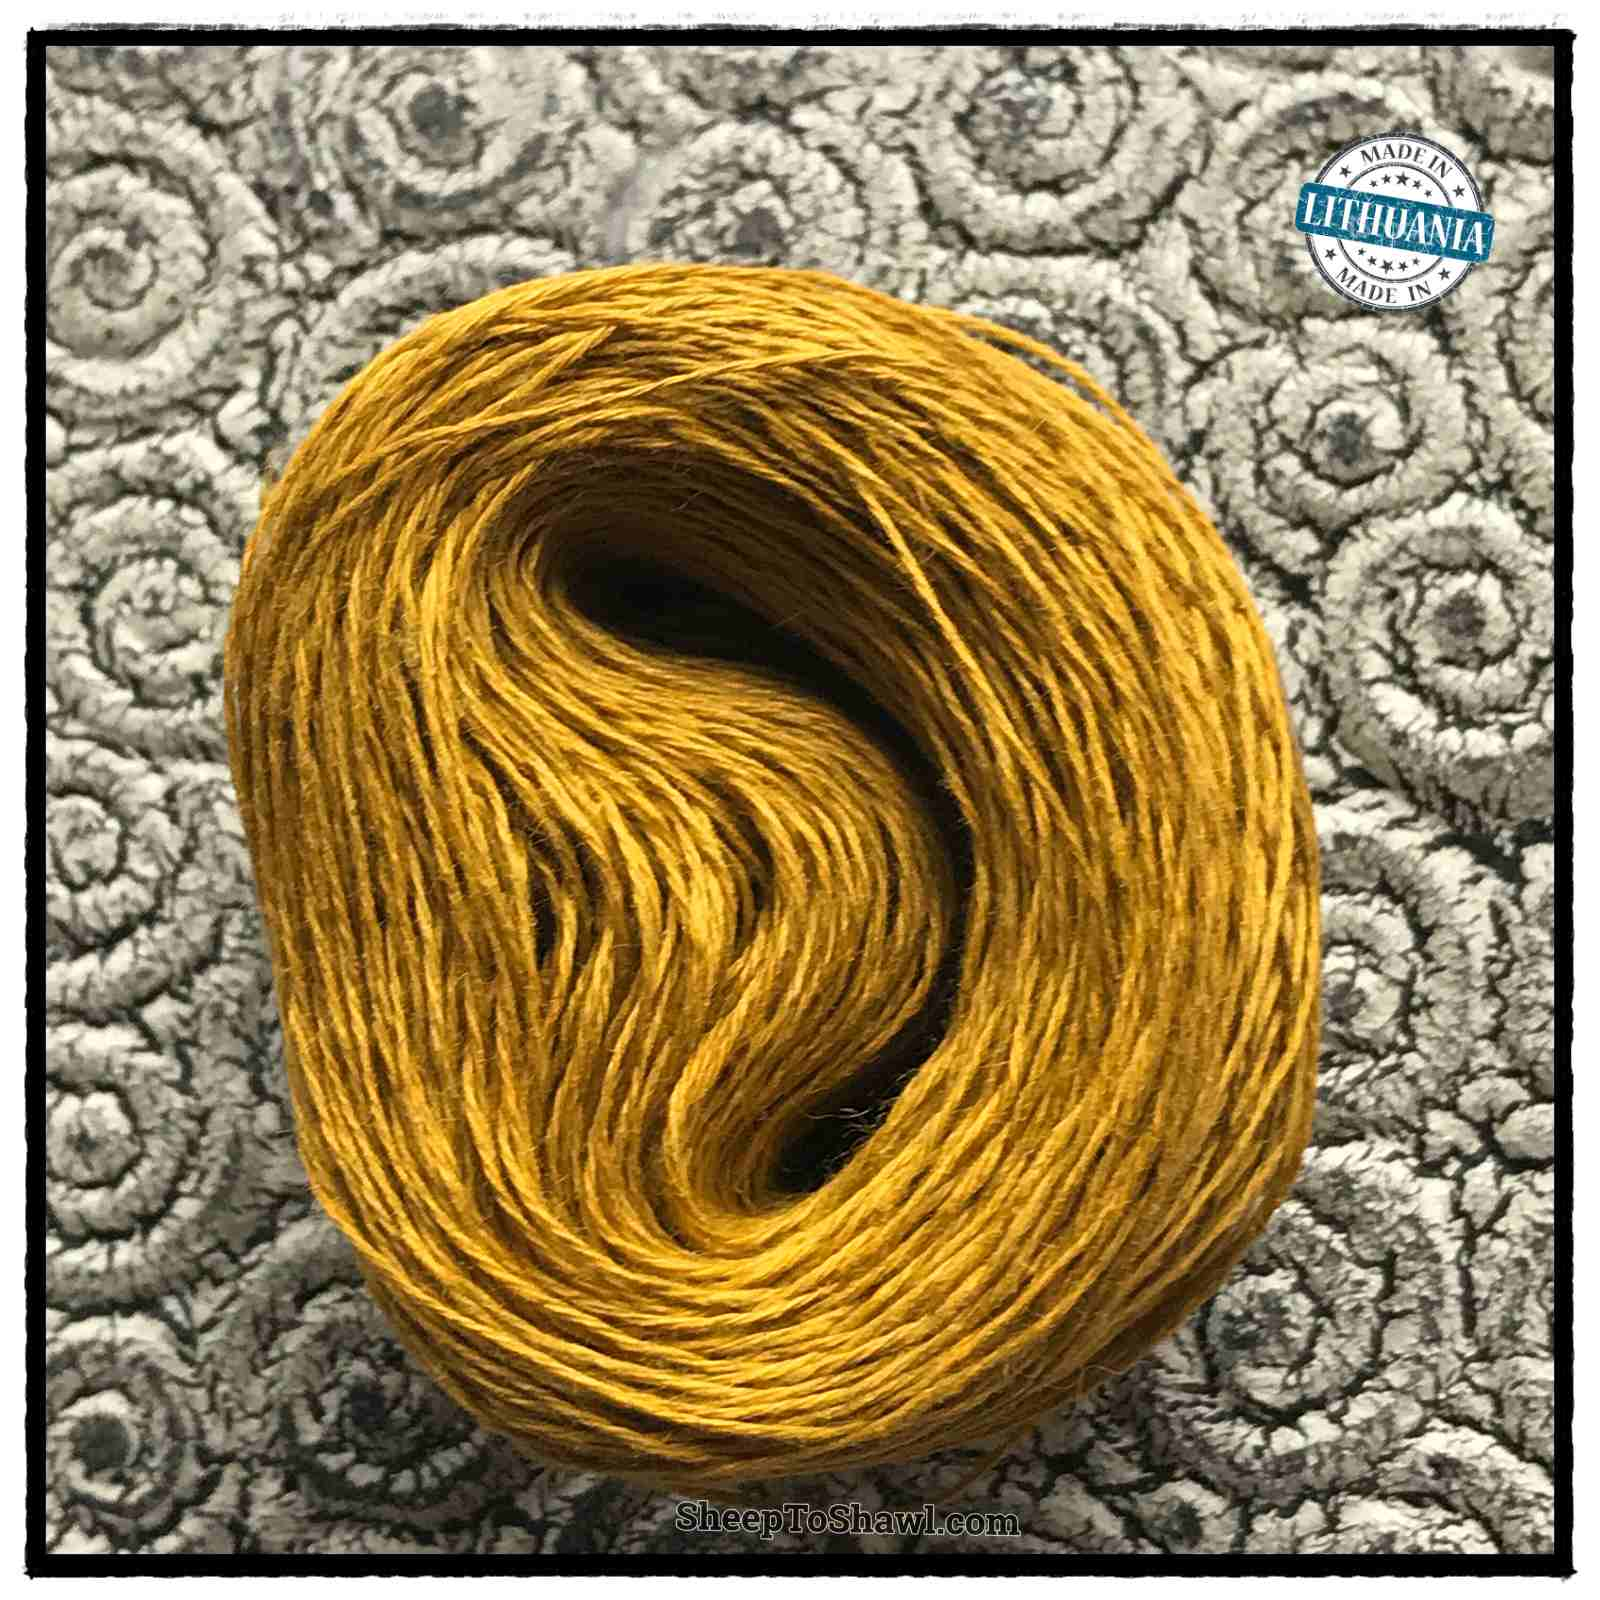 Linen Yarn From Lithuania - 3 ply Mustard Gold 1